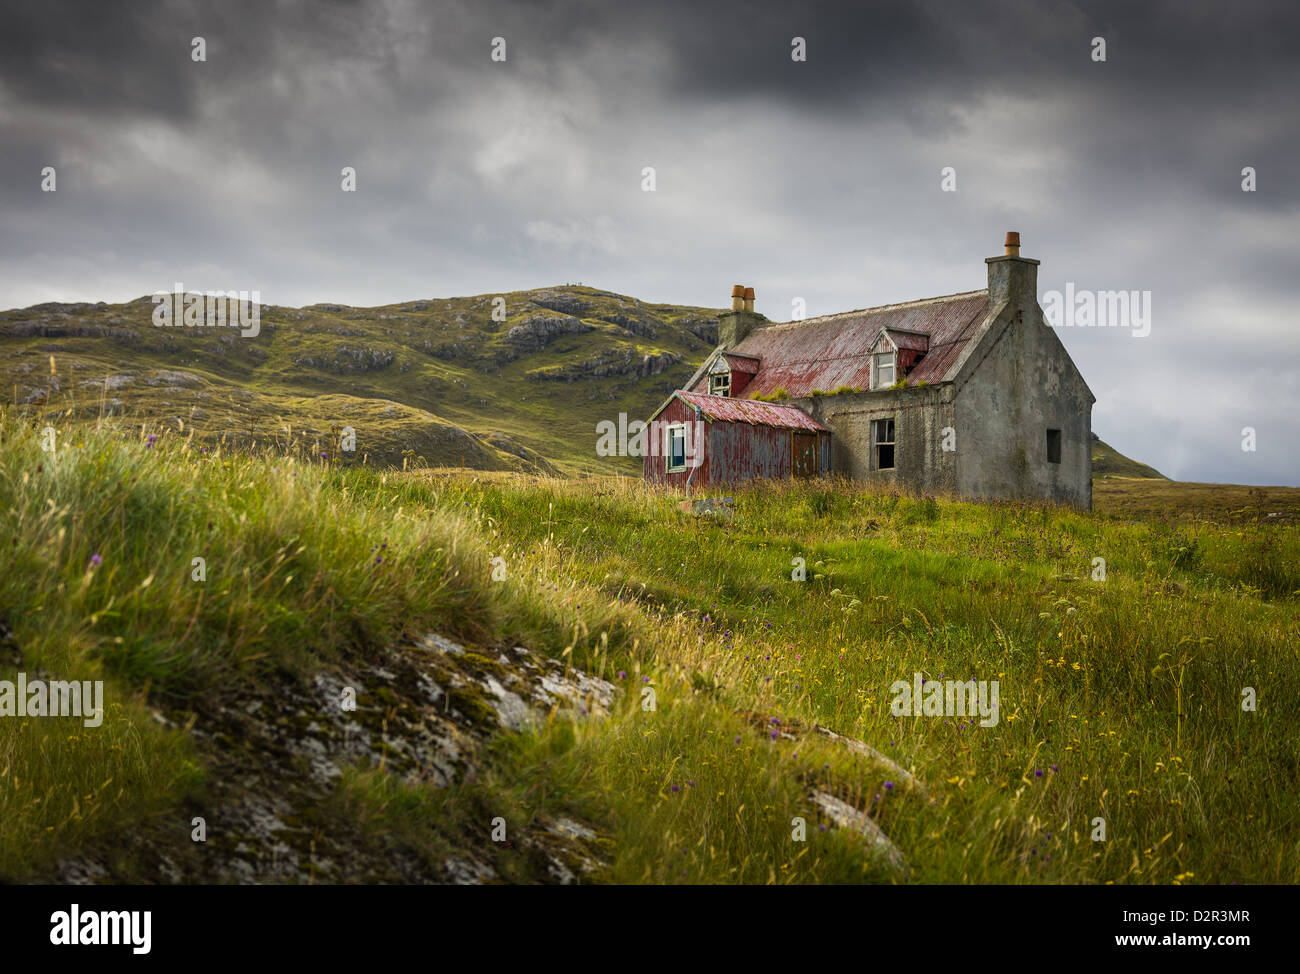 Derelict house on Eriskay in the Outer Hebrides, on a stormy day - Stock Image